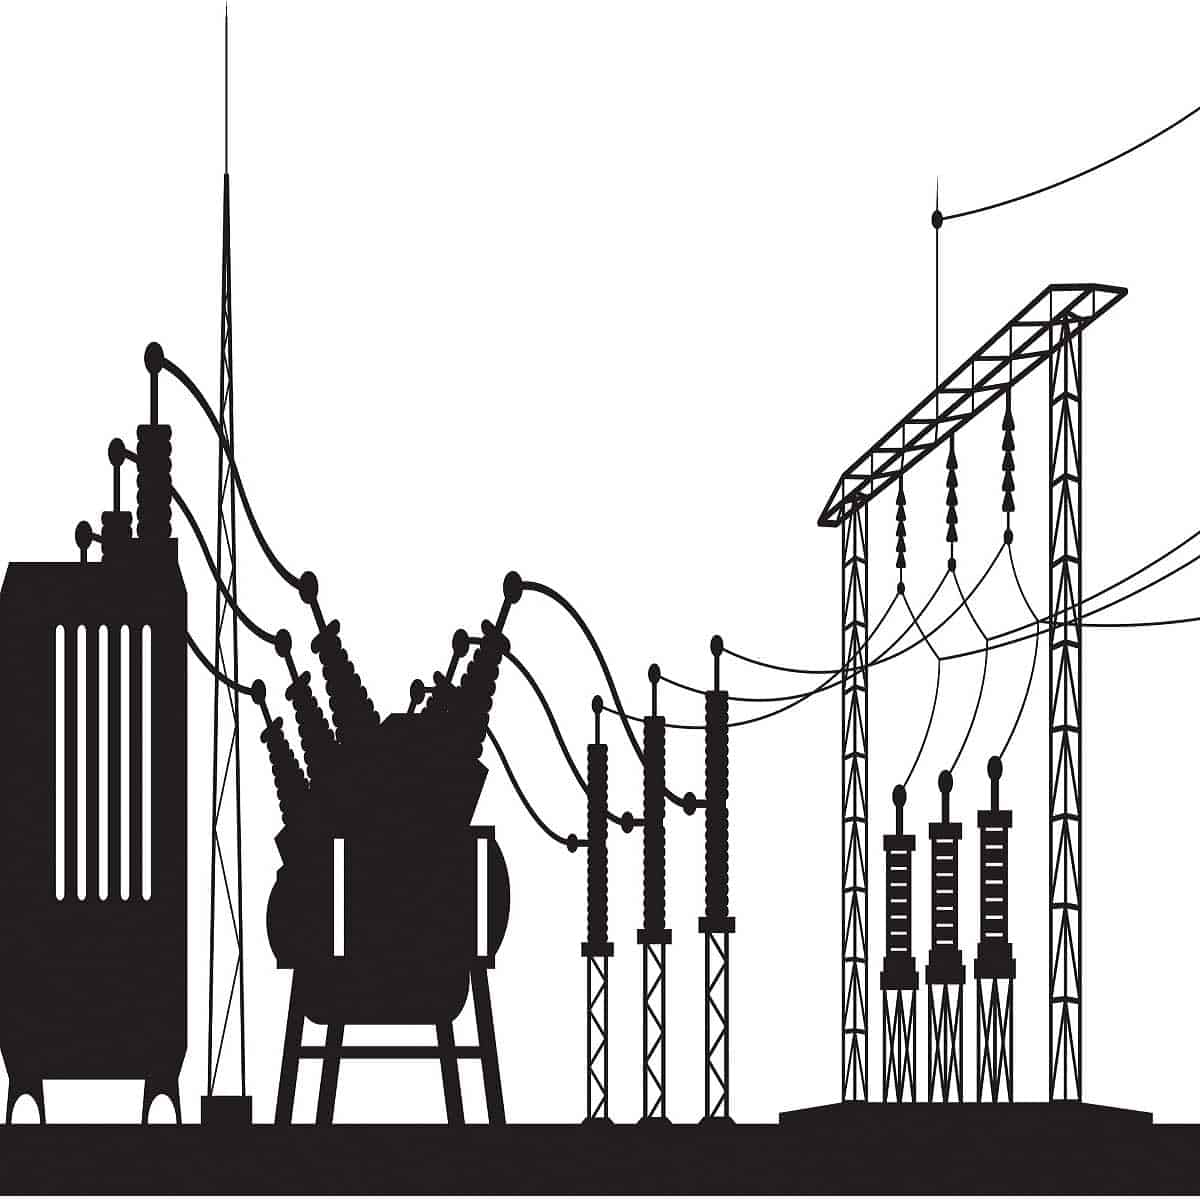 High Voltage Substation & Distribution Line